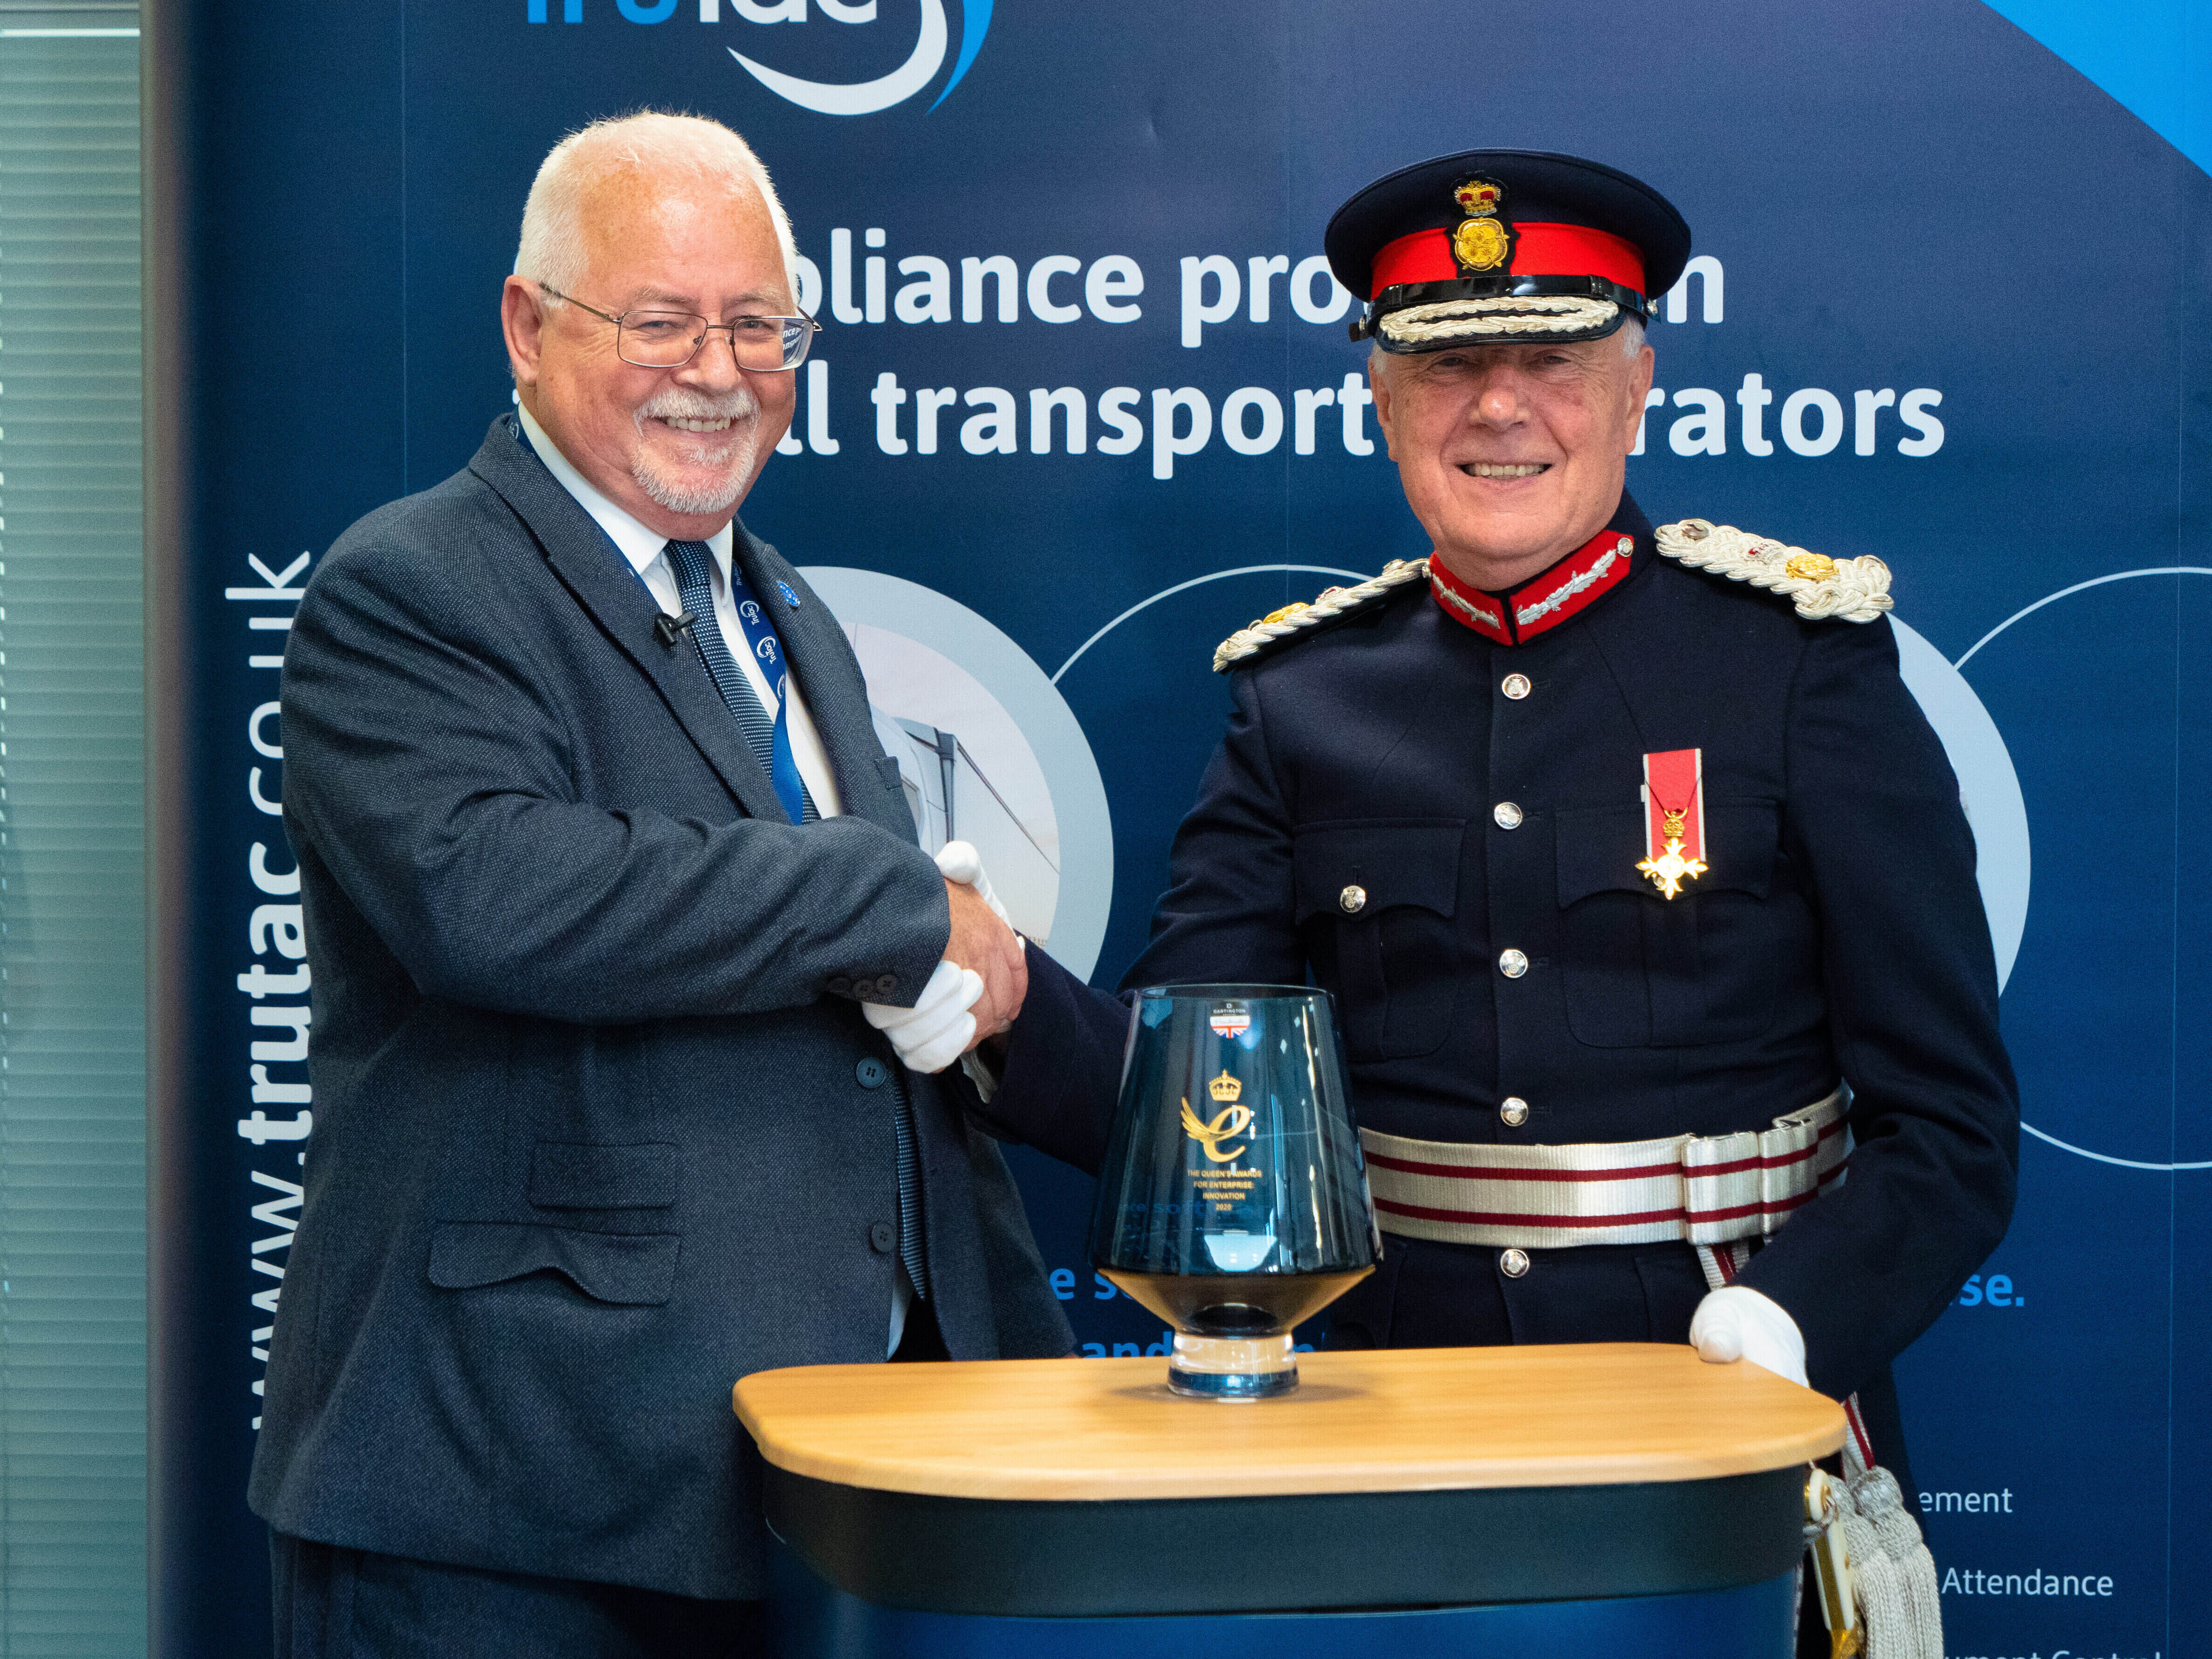 TruTac presented with Queen's Award for Innovation